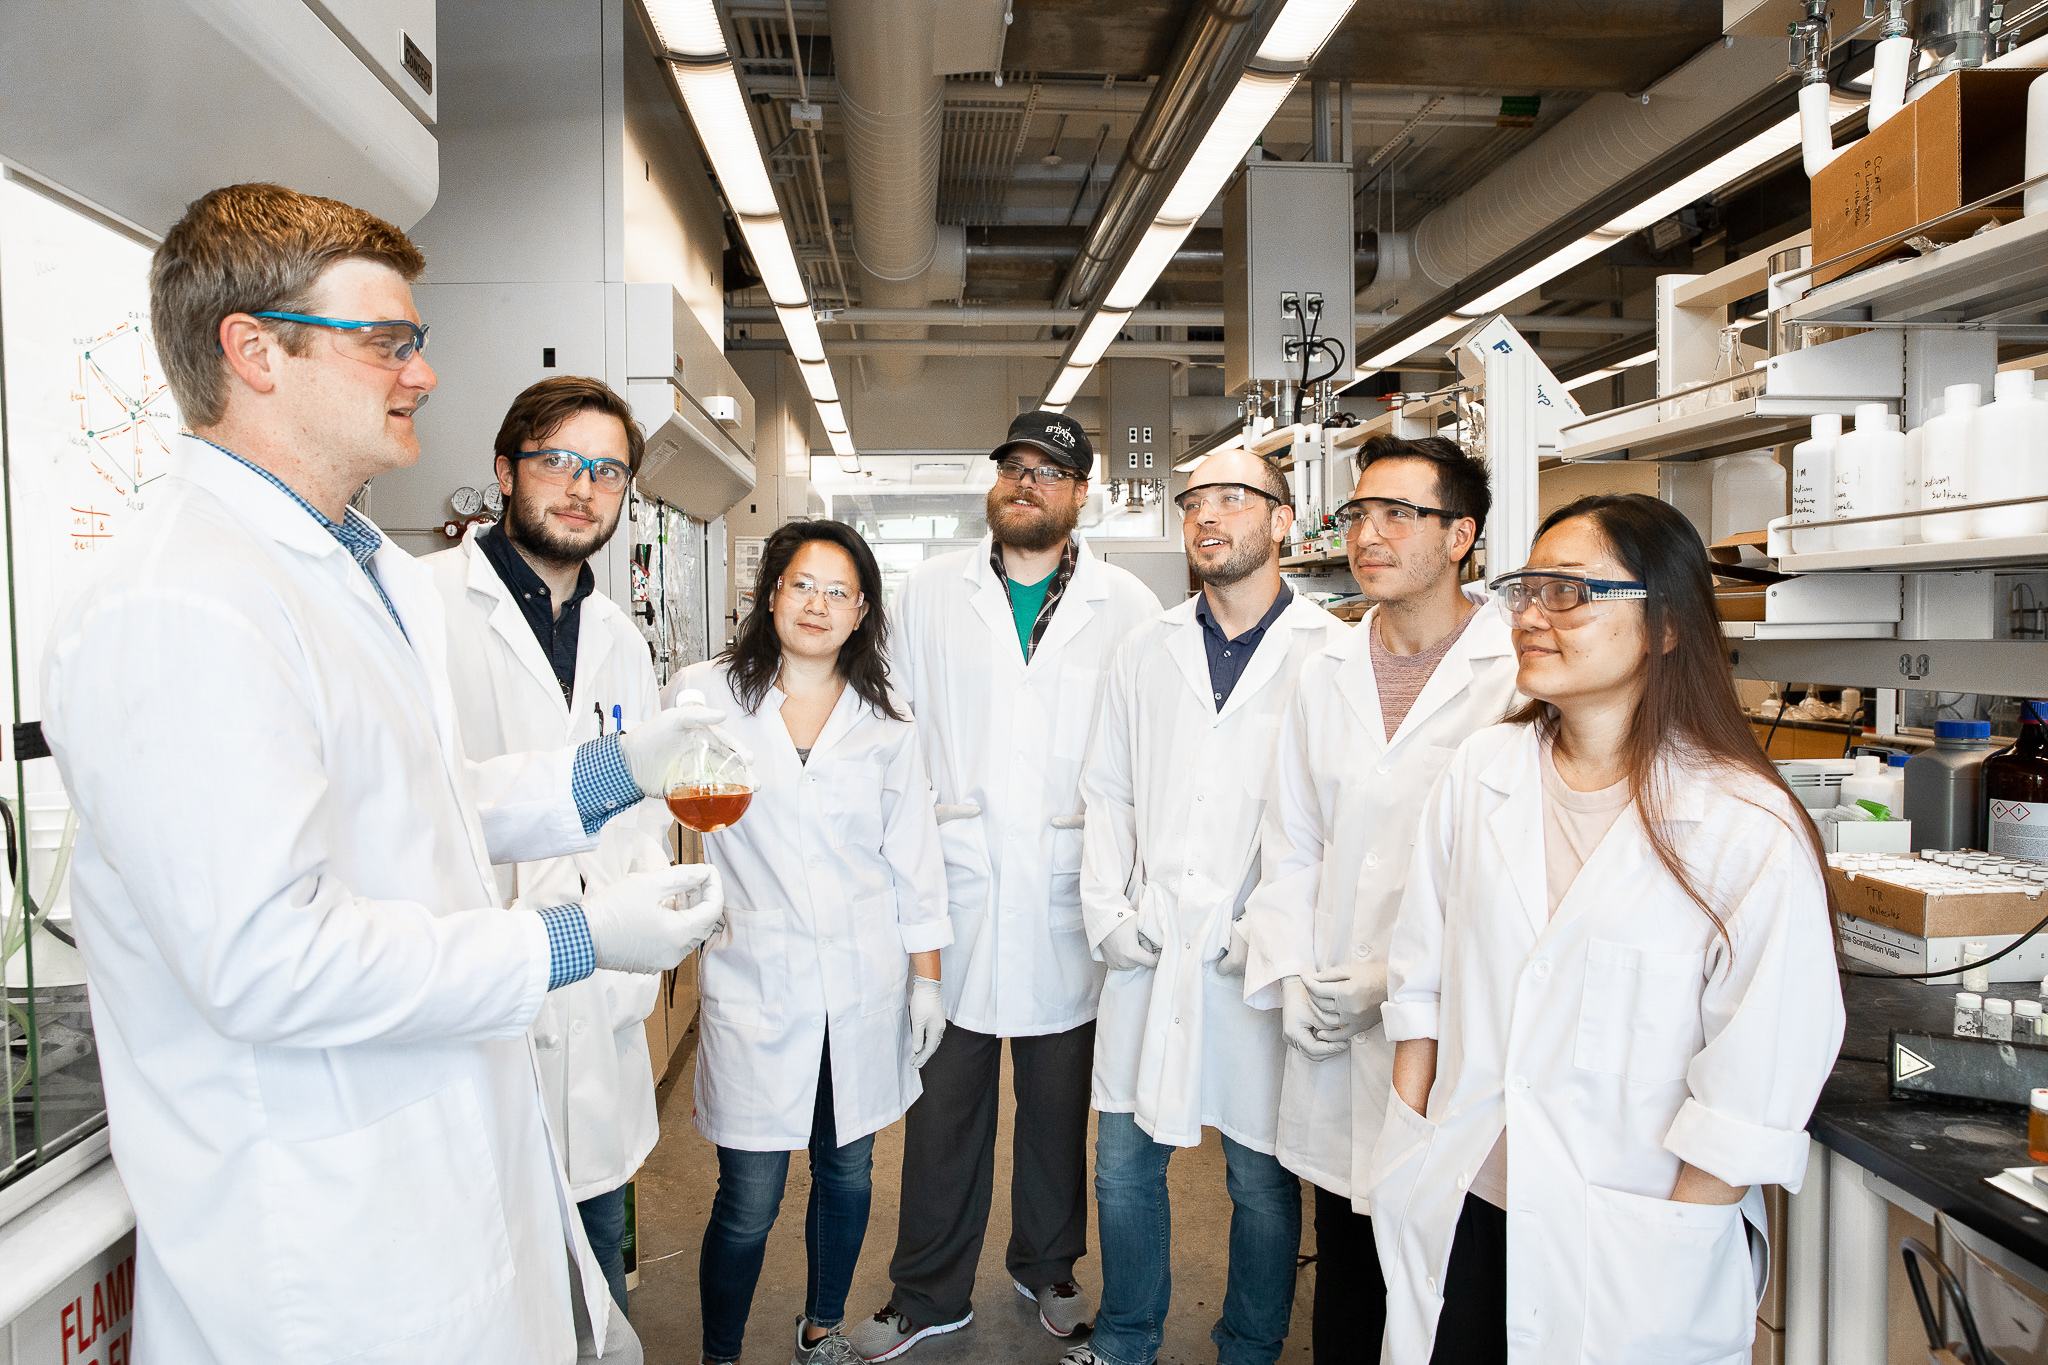 VanVeller and his team of student researchers discuss their research in the lab